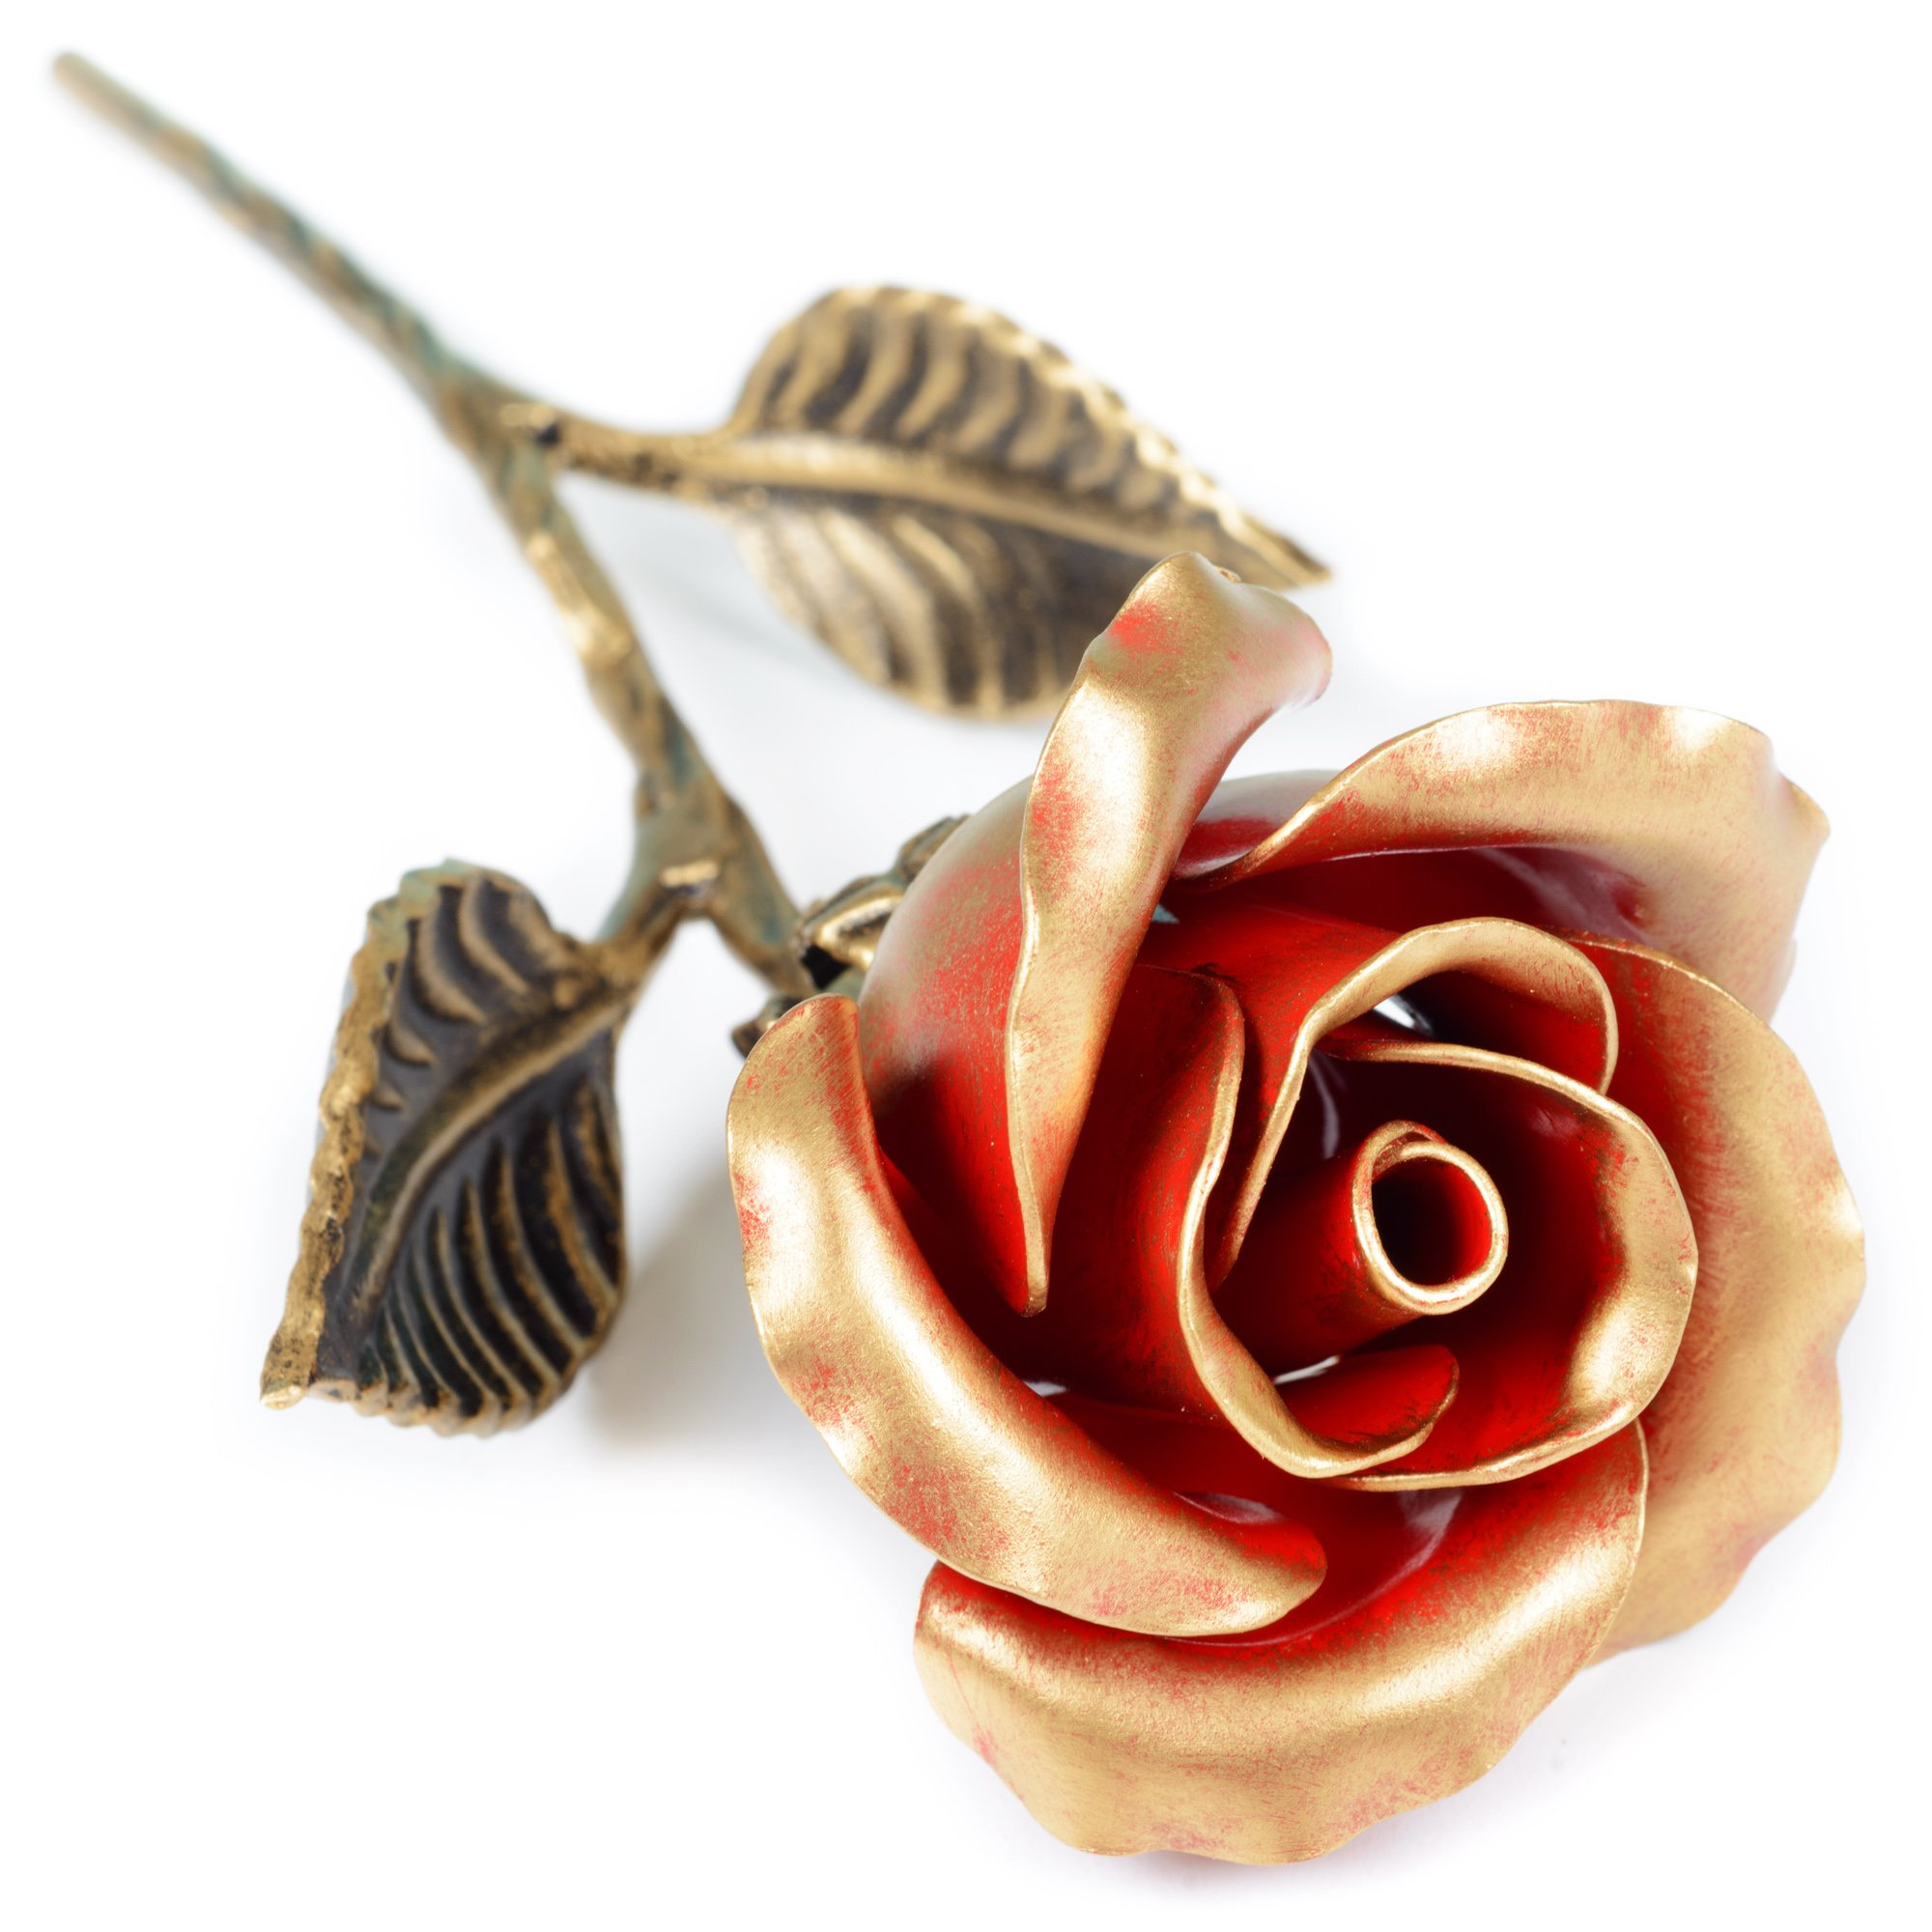 Hand Forged Iron Rose - 11th / 6th Year Wedding Anniversary Gift for Her/Red Metal Rose Steel Rose by MetalArt (Image #1)